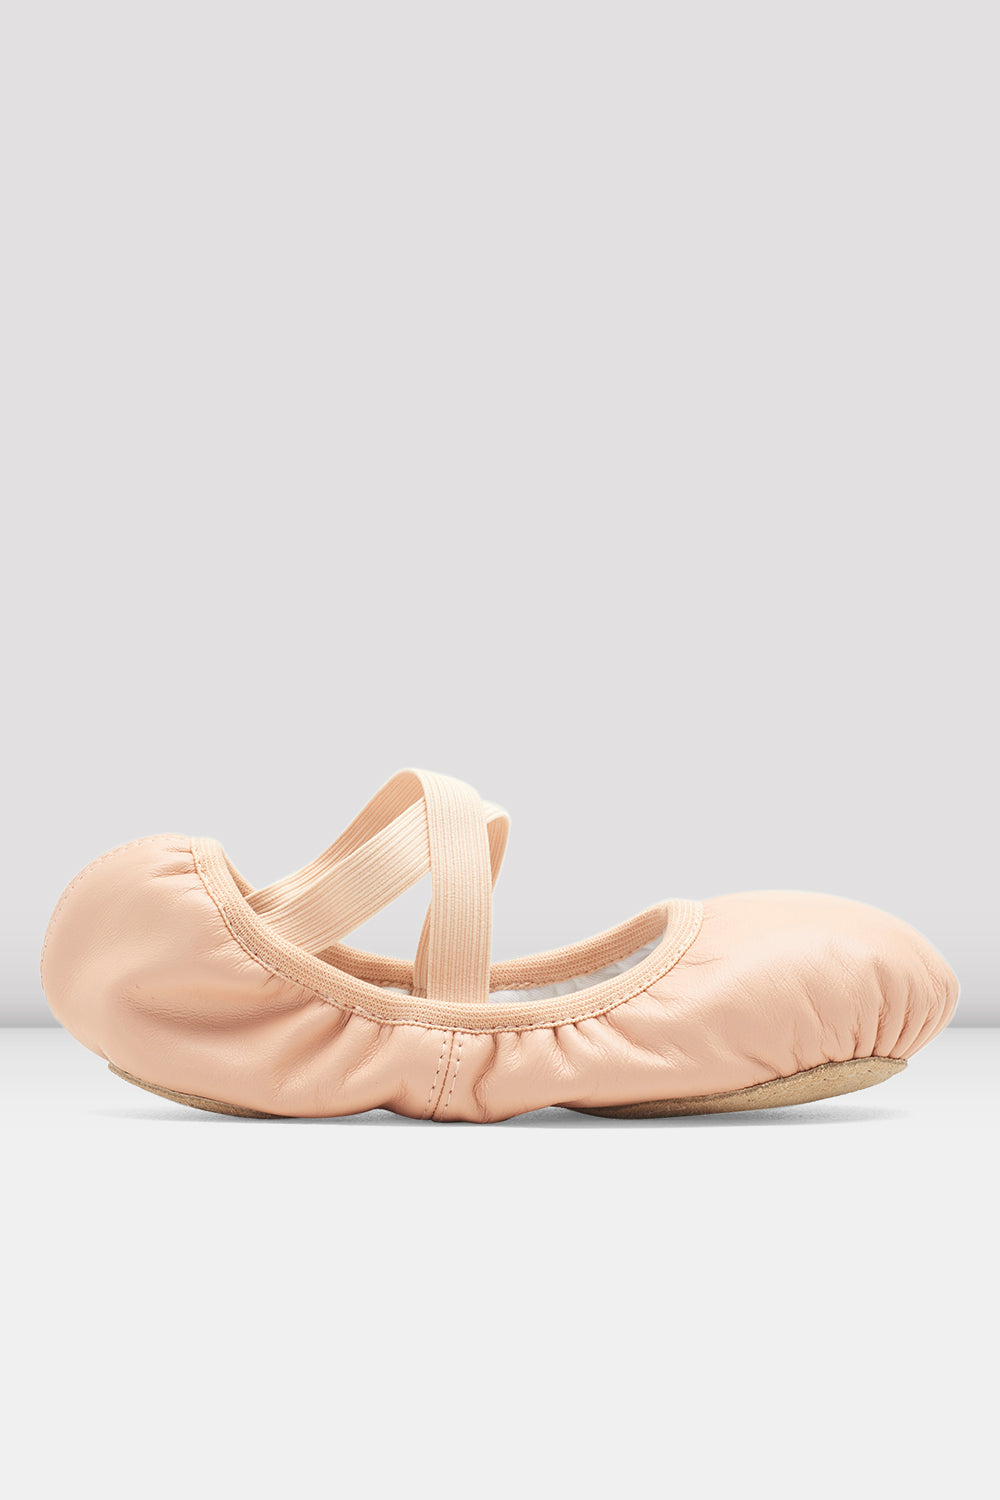 Ladies Odette Leather Ballet Shoes